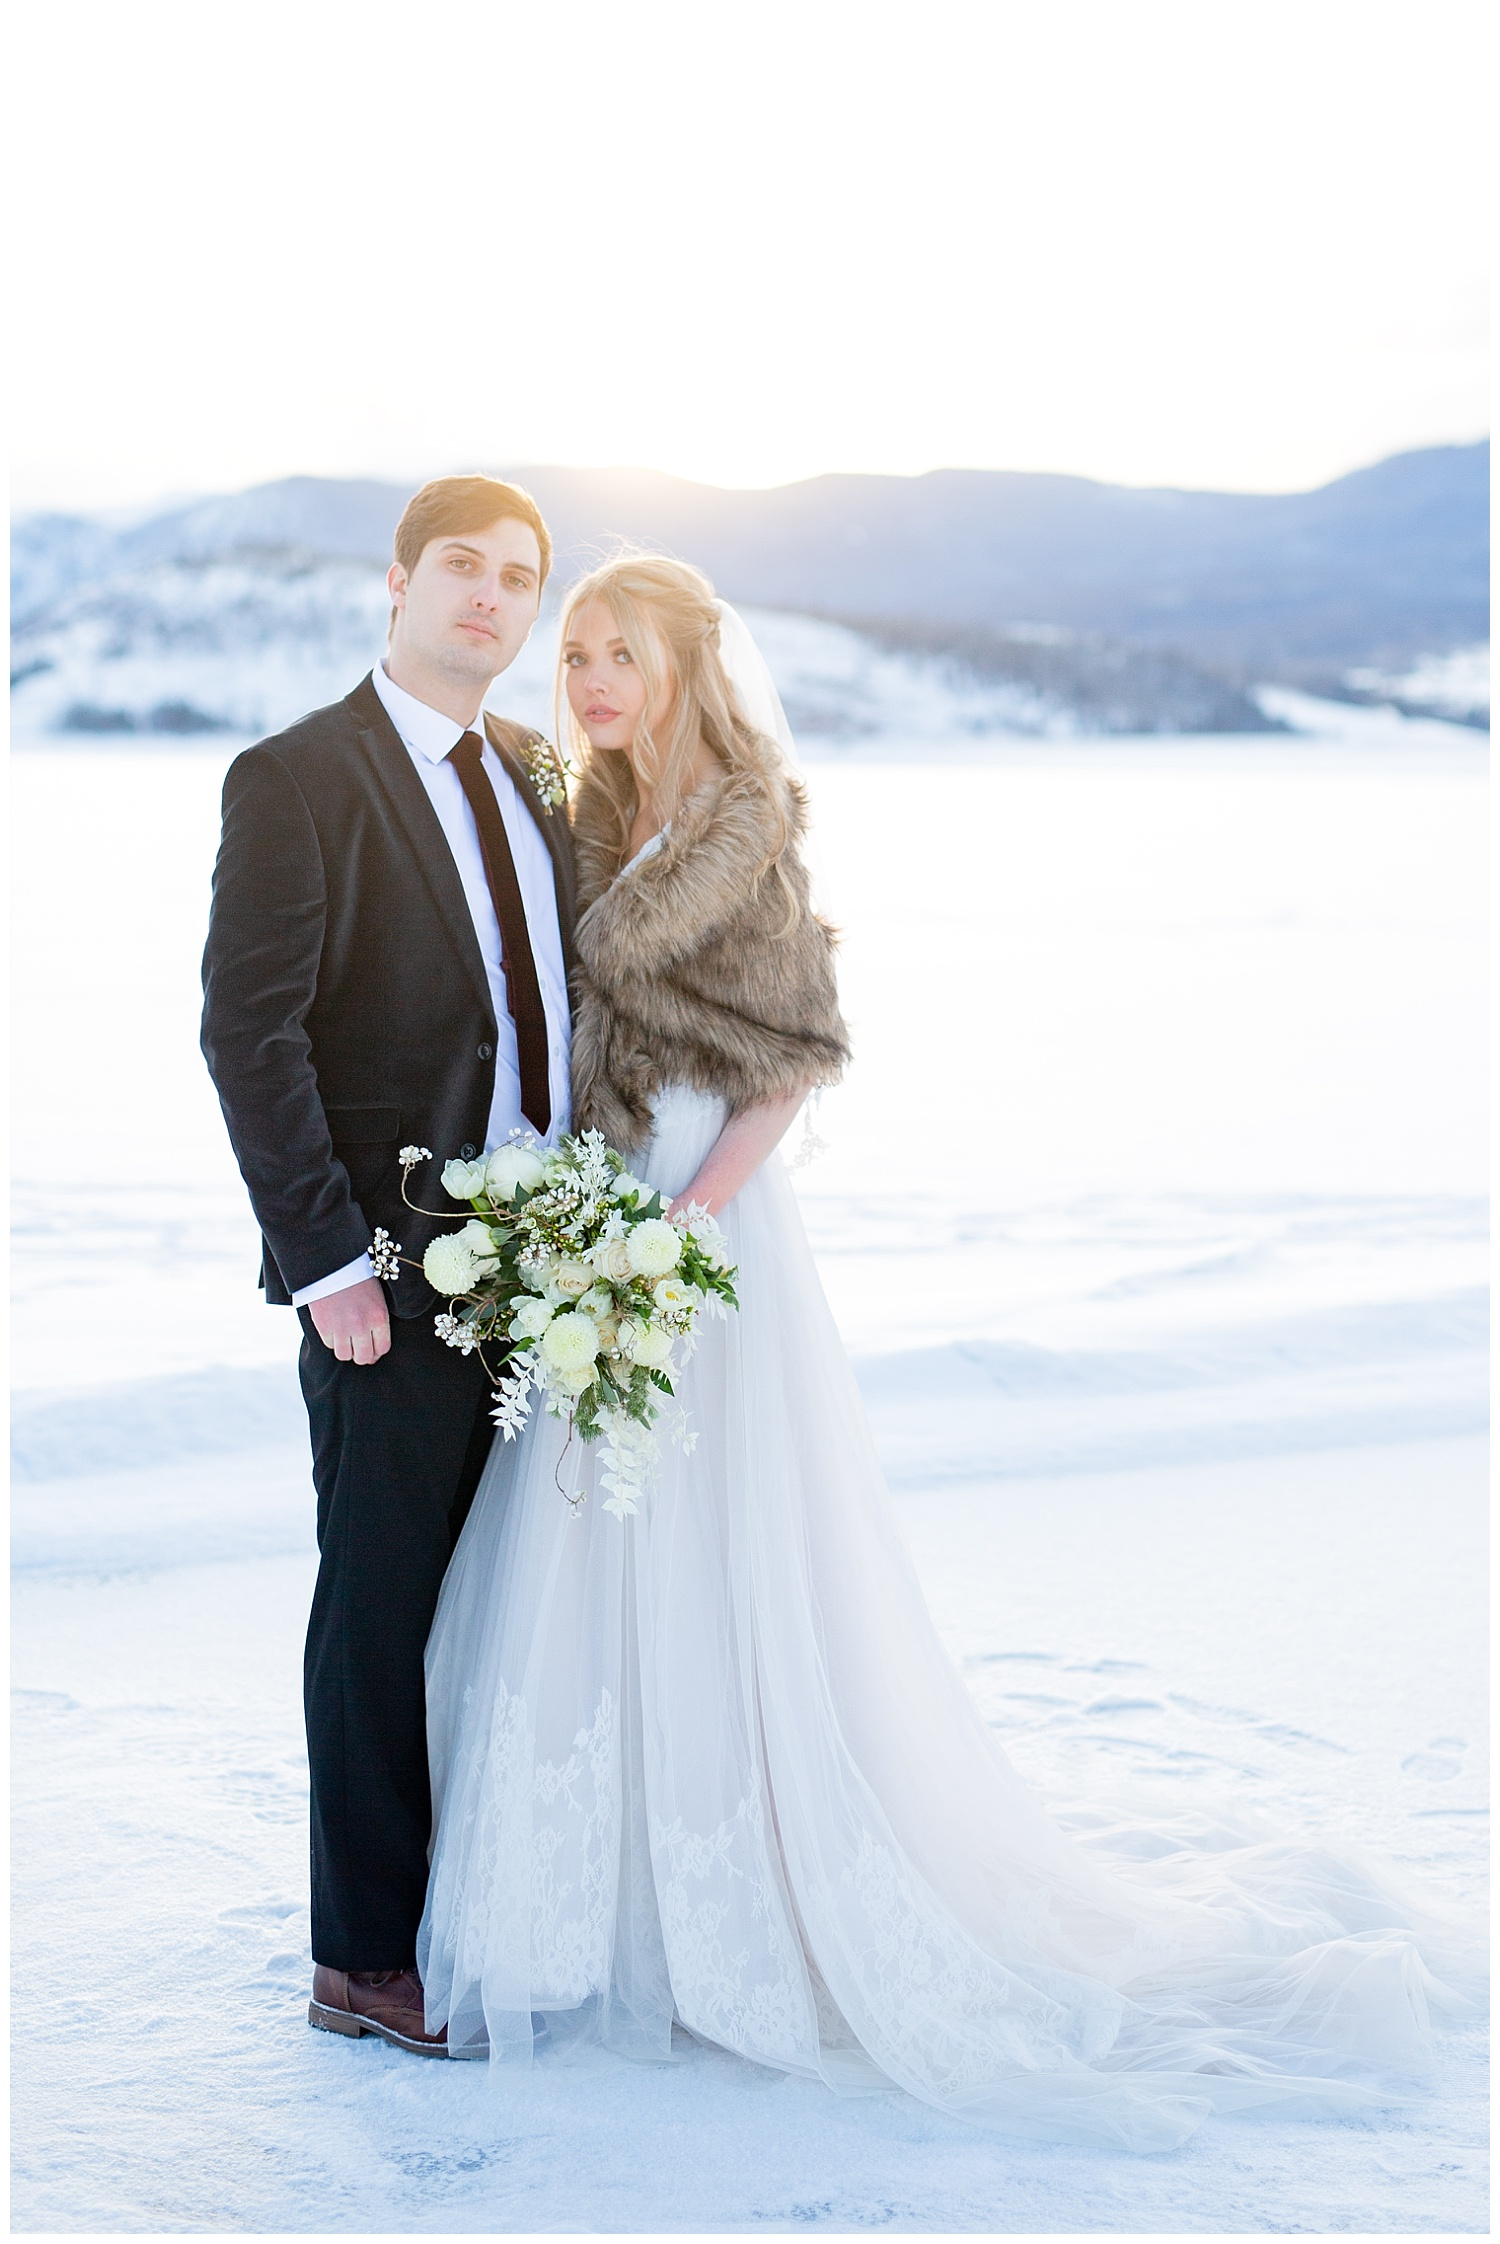 A bride and groom on a snowy lake in the middle of winter